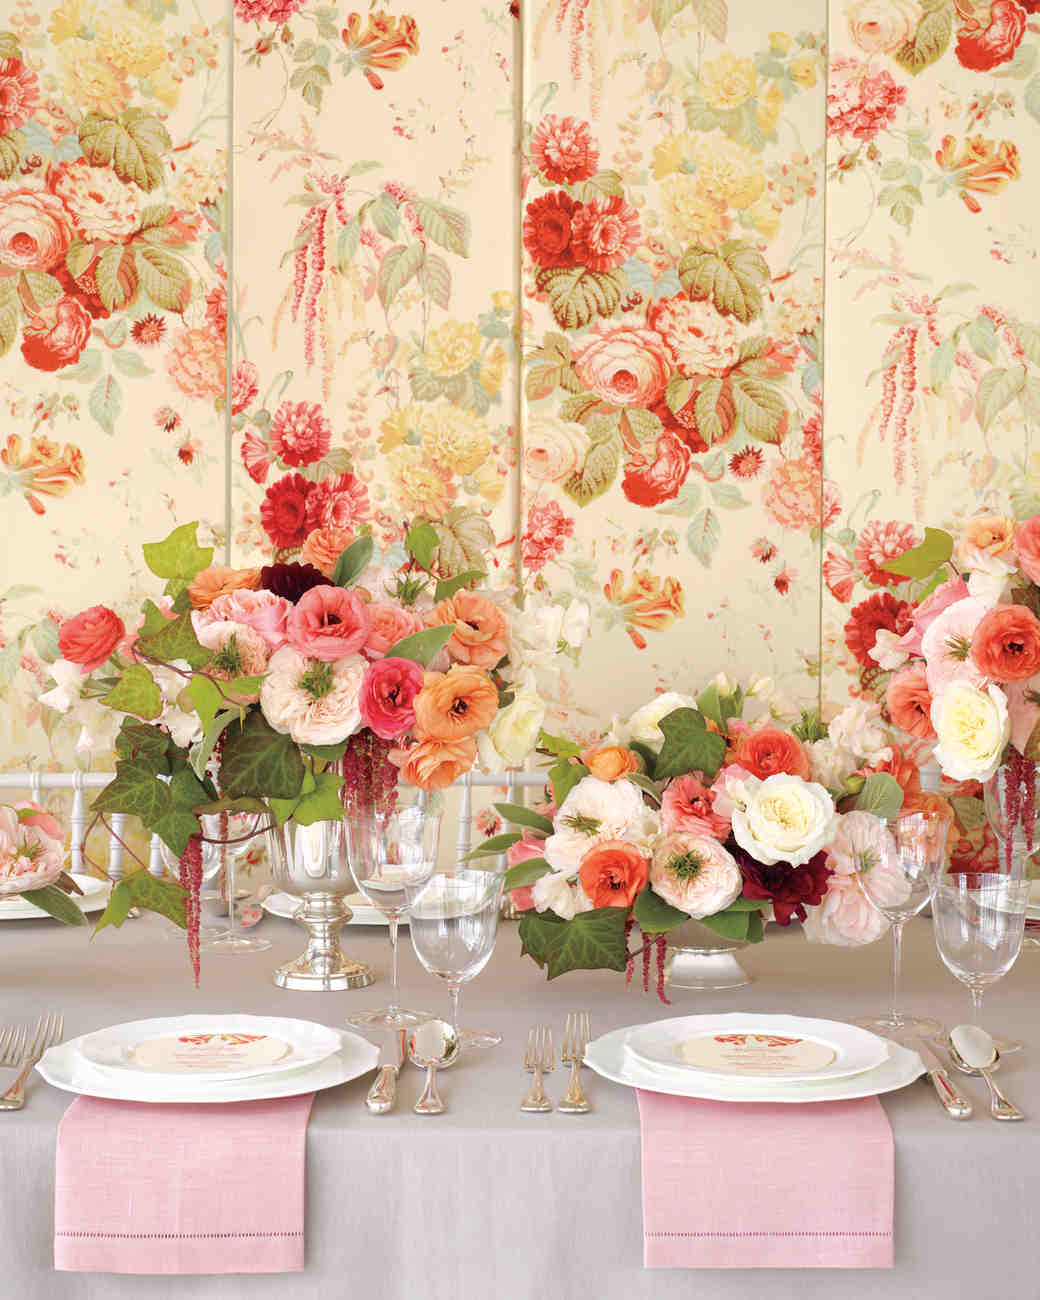 Floral Fabric-Inspired Wedding Ideas | Martha Stewart Weddings